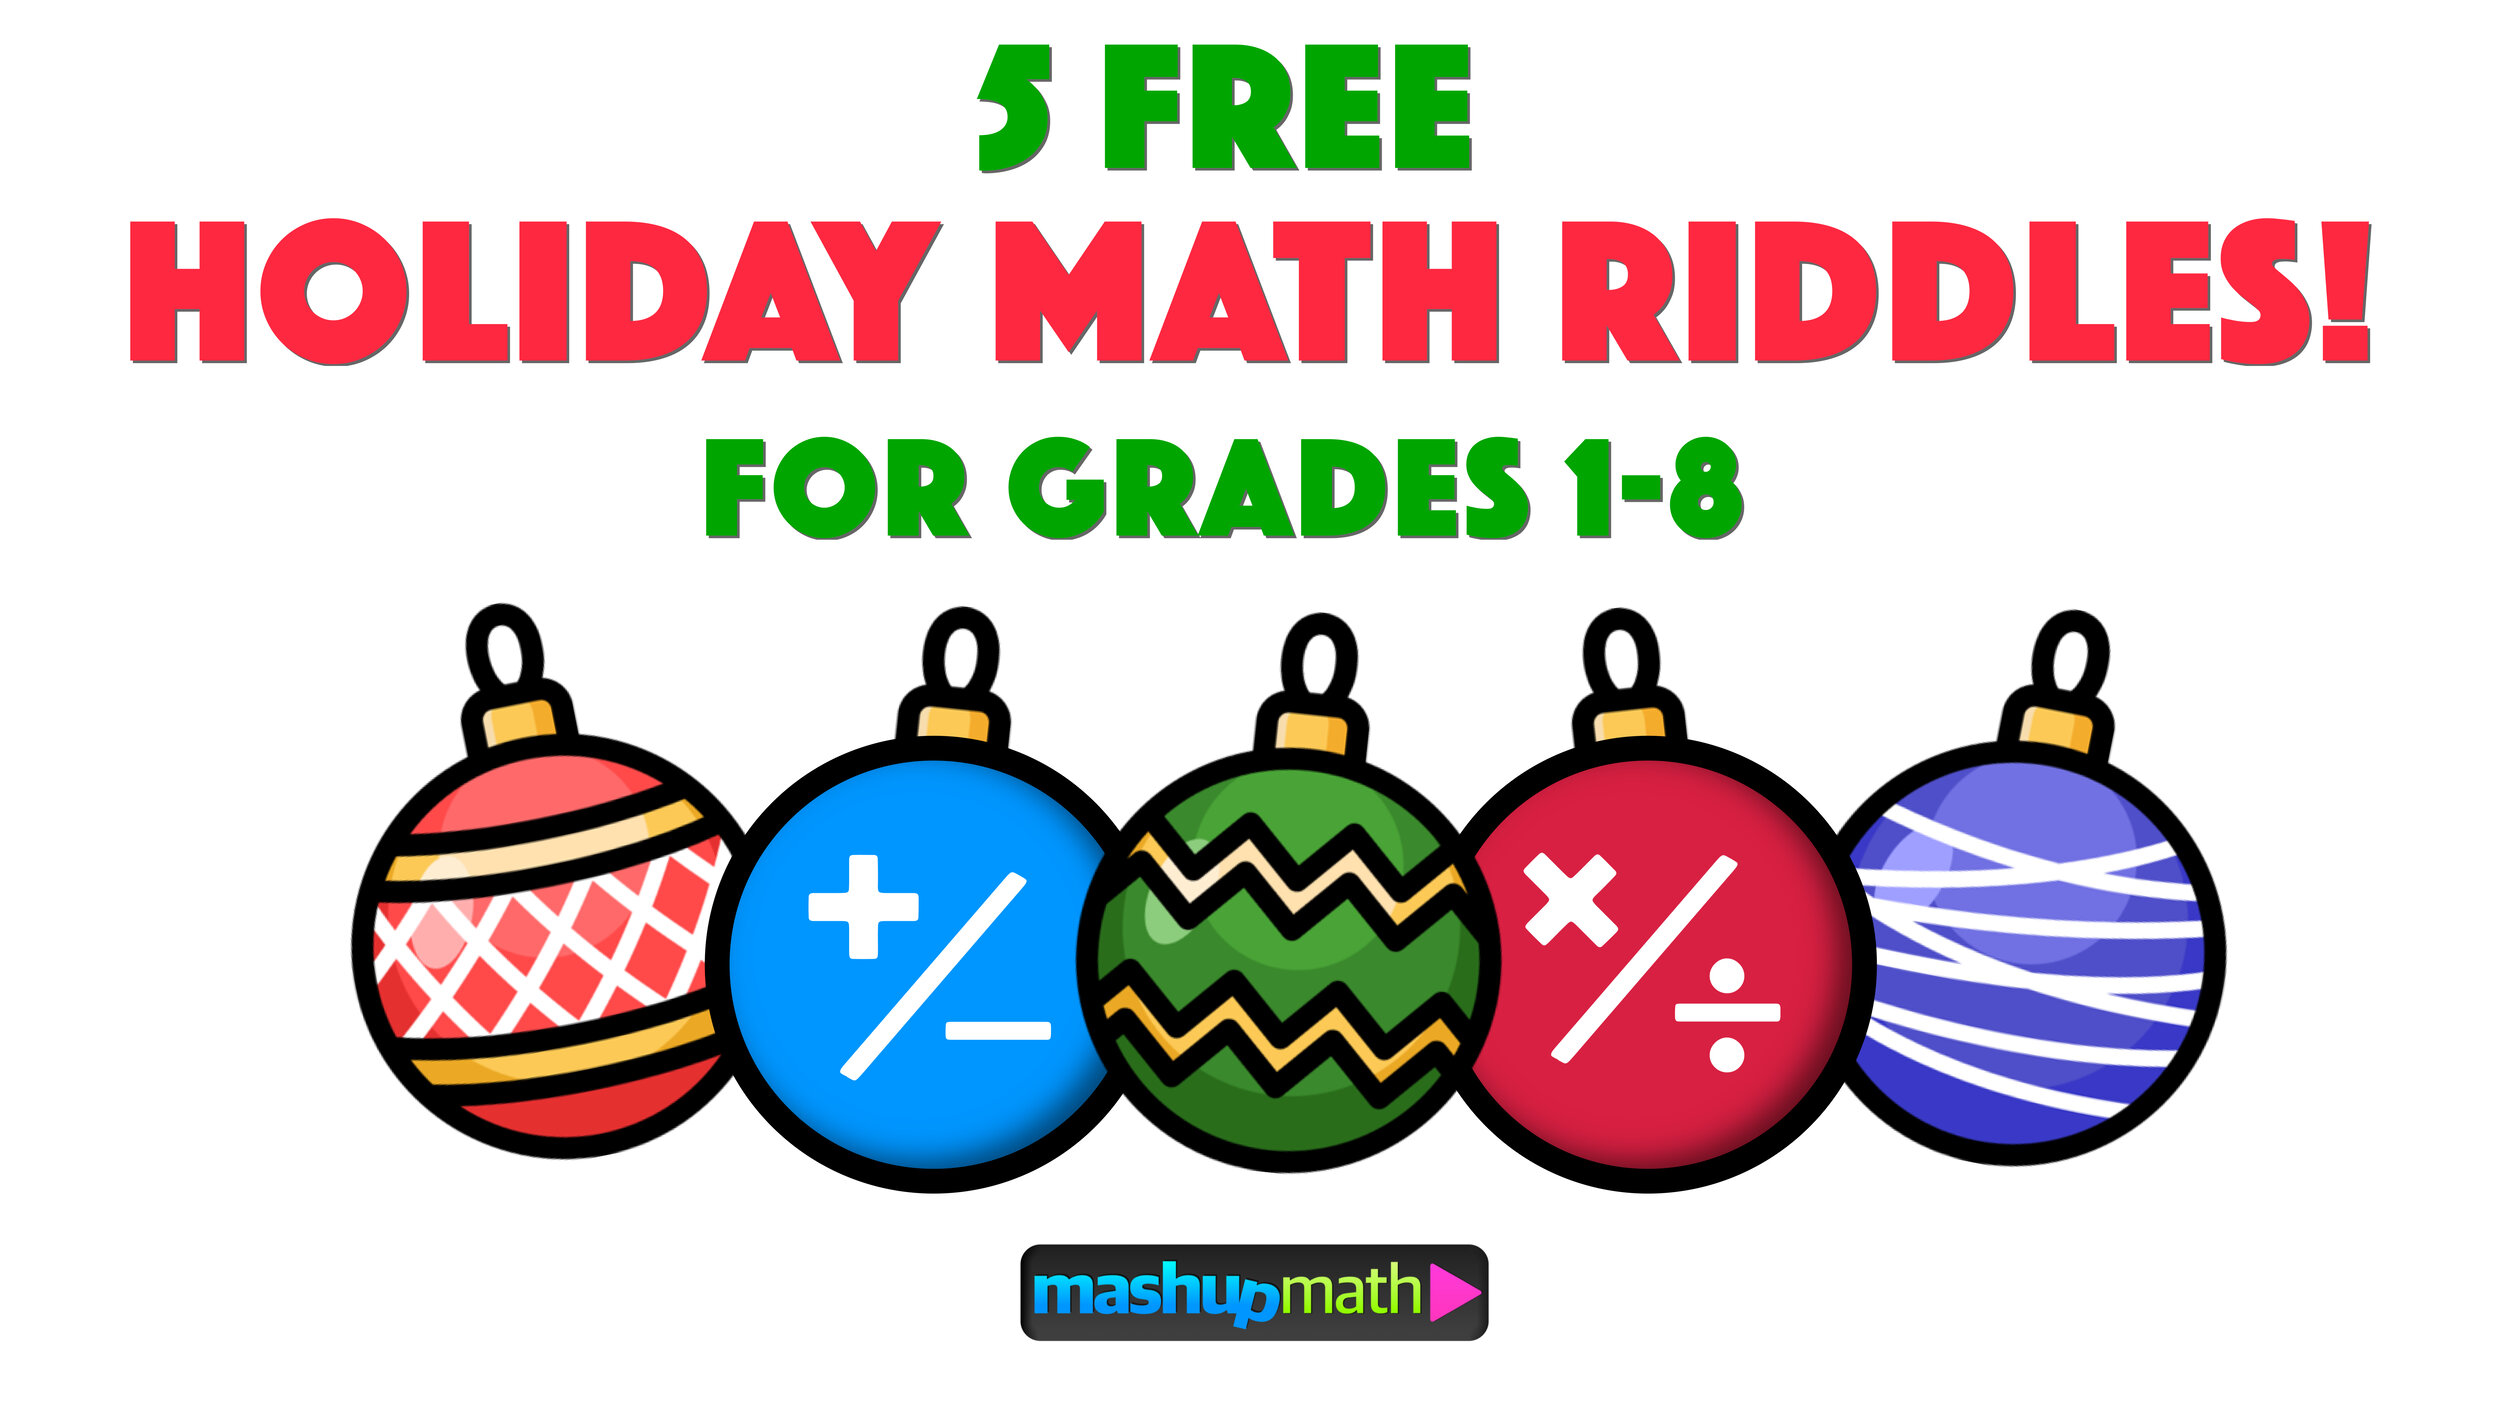 5 Fun Christmas Math Riddles And Brain Teasers For Grades 1 8 Mashup Math